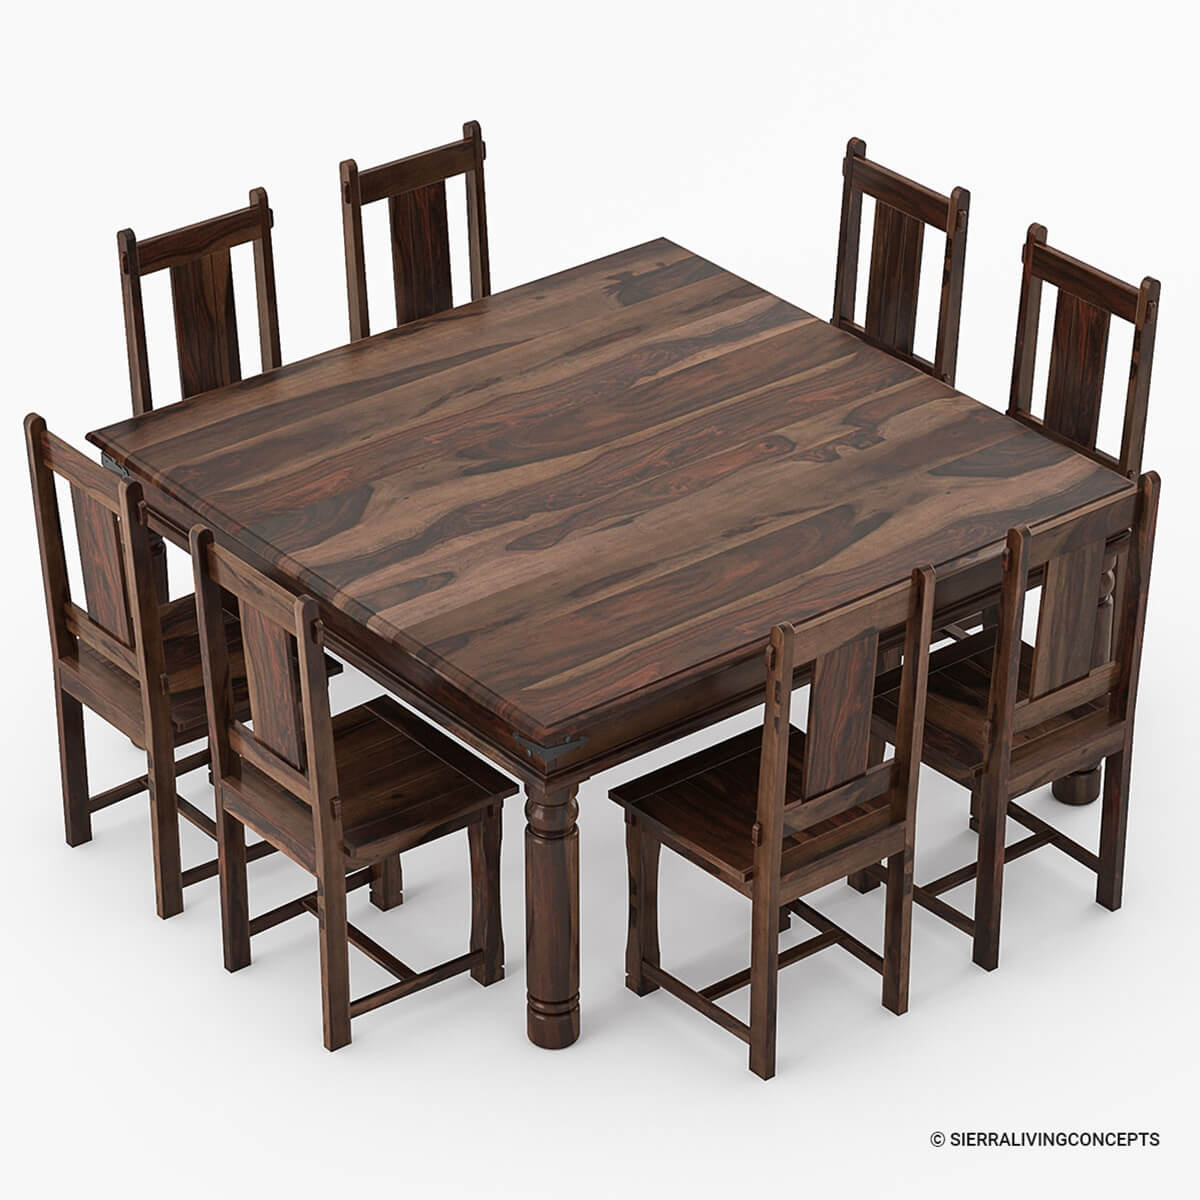 Richmond rustic solid wood large square dining room table for Square dining table for 8